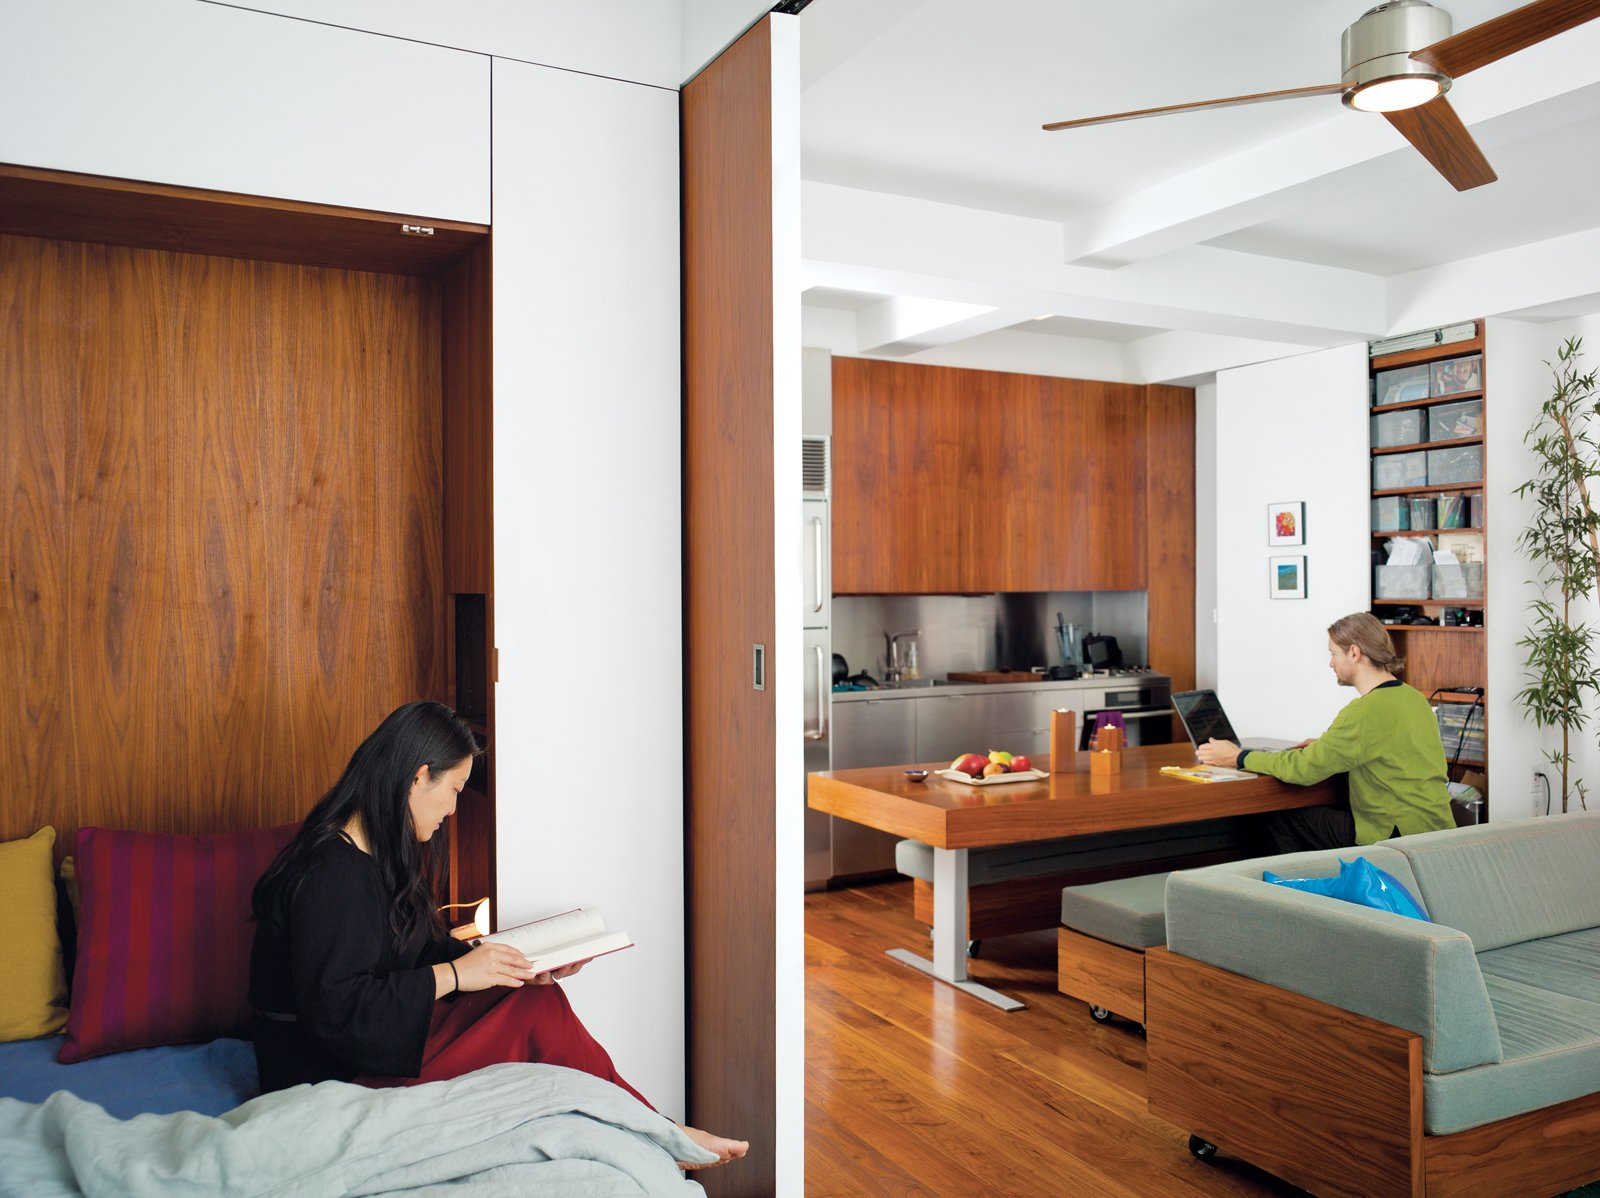 "Screened by the sliding door, Rosa cozies up with a book in the bedroom, while across the apartment Robert uses the hydraulic kitchen table as a work desk. ""We wanted to explore the power of custom design by creating integrated furniture to maximize both efficiency and aesthetics,"" says Rosa. Tagged: Living Room and Chair.  Photo 6 of 14 in Stow Aways"